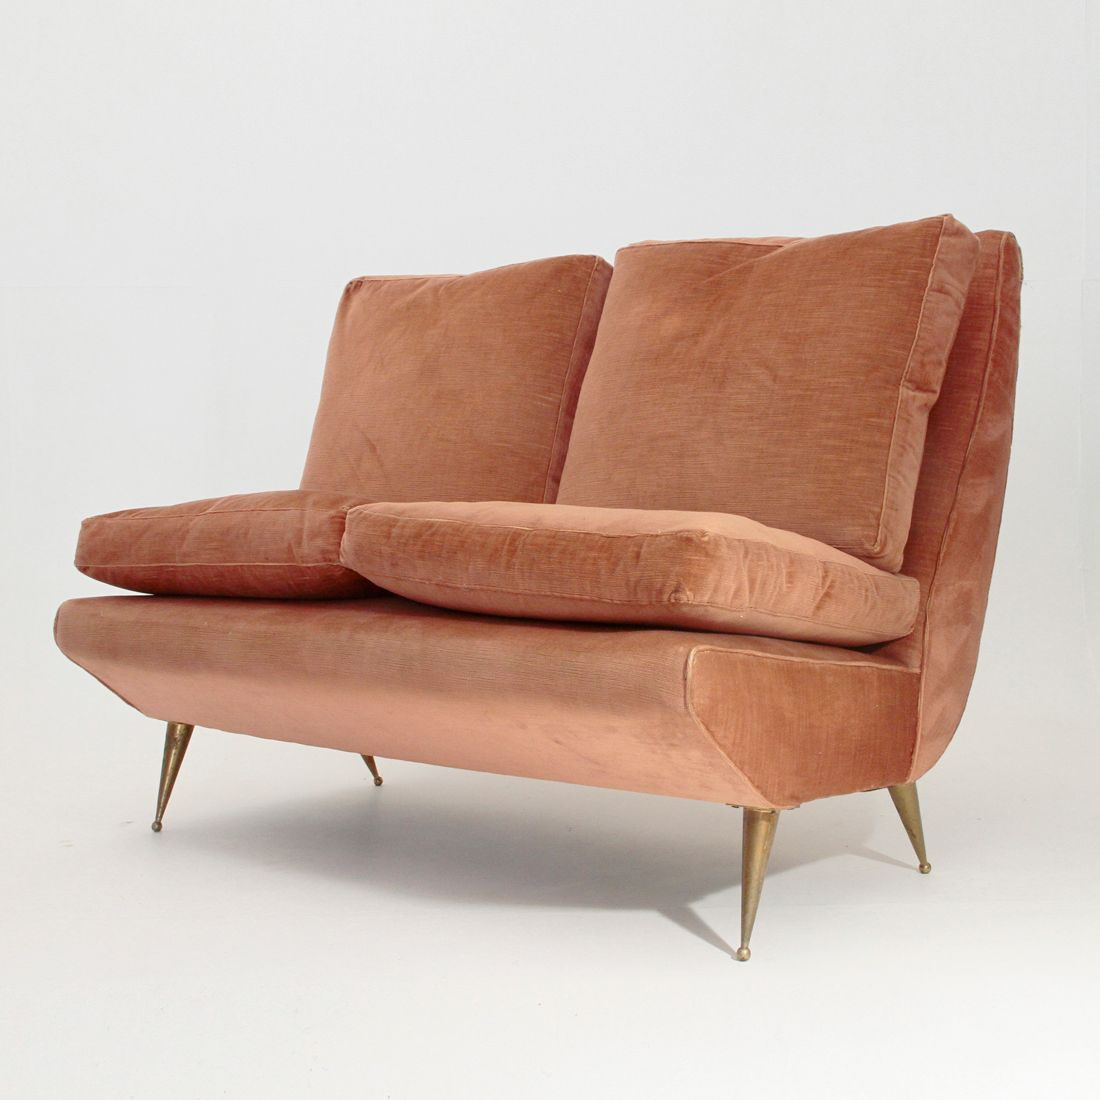 Italian 2 seater sofa with brass legs 1950s for sale at for Sofa zweisitzer